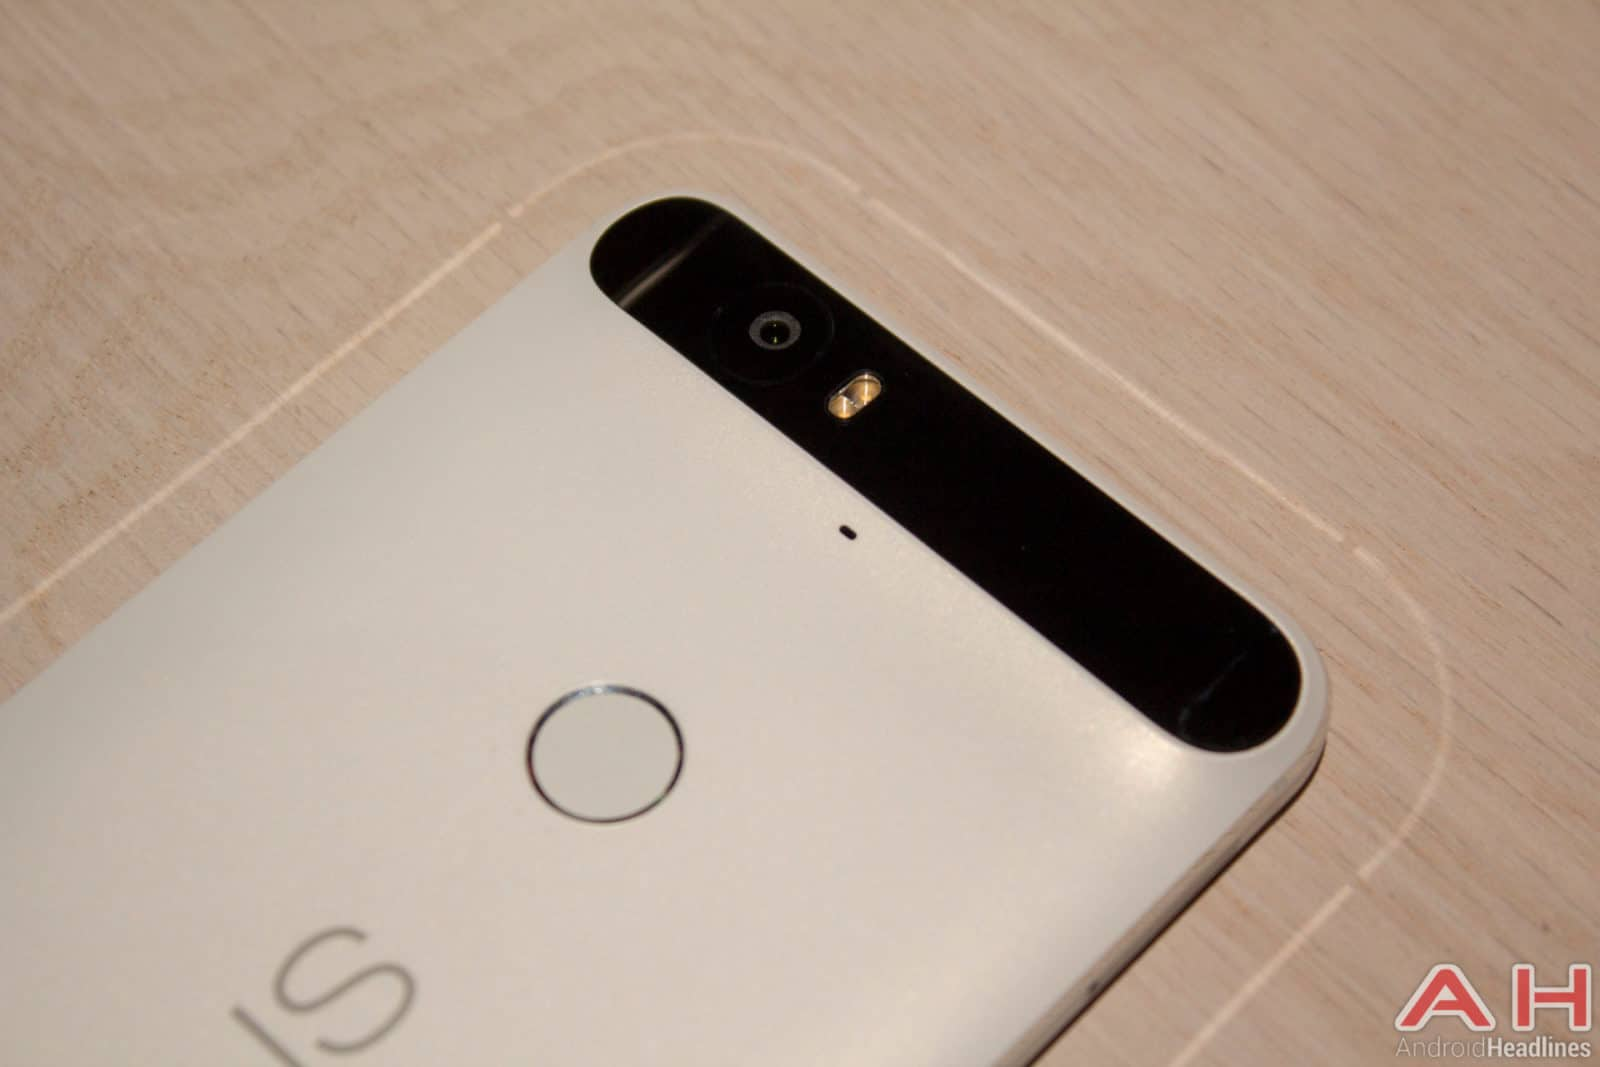 Nexus 6P Hands On Batch 2 AH 9